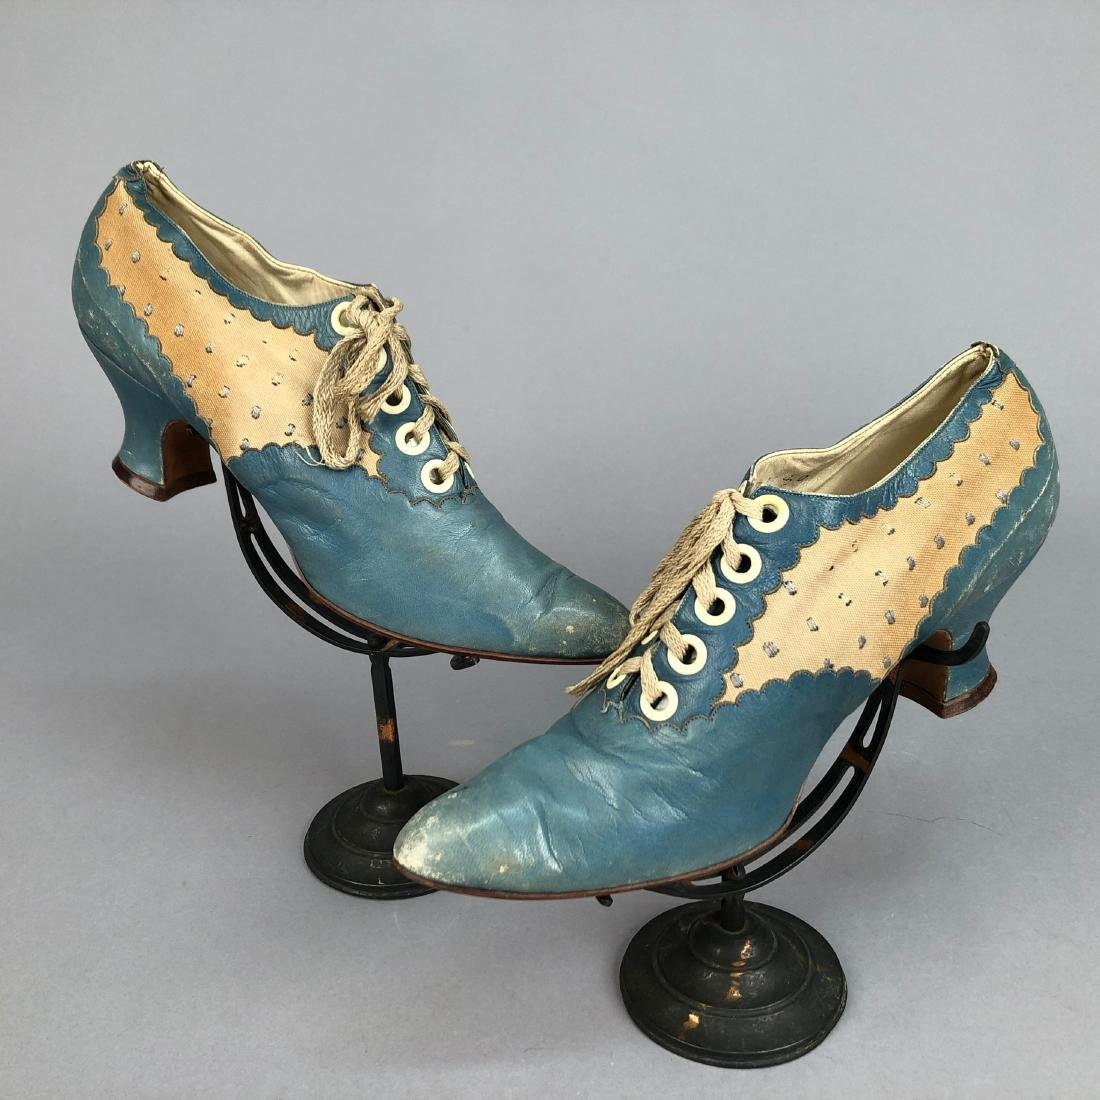 LACING LEATHER SHOES with DOTTED INSERTS, 1890 - 1895